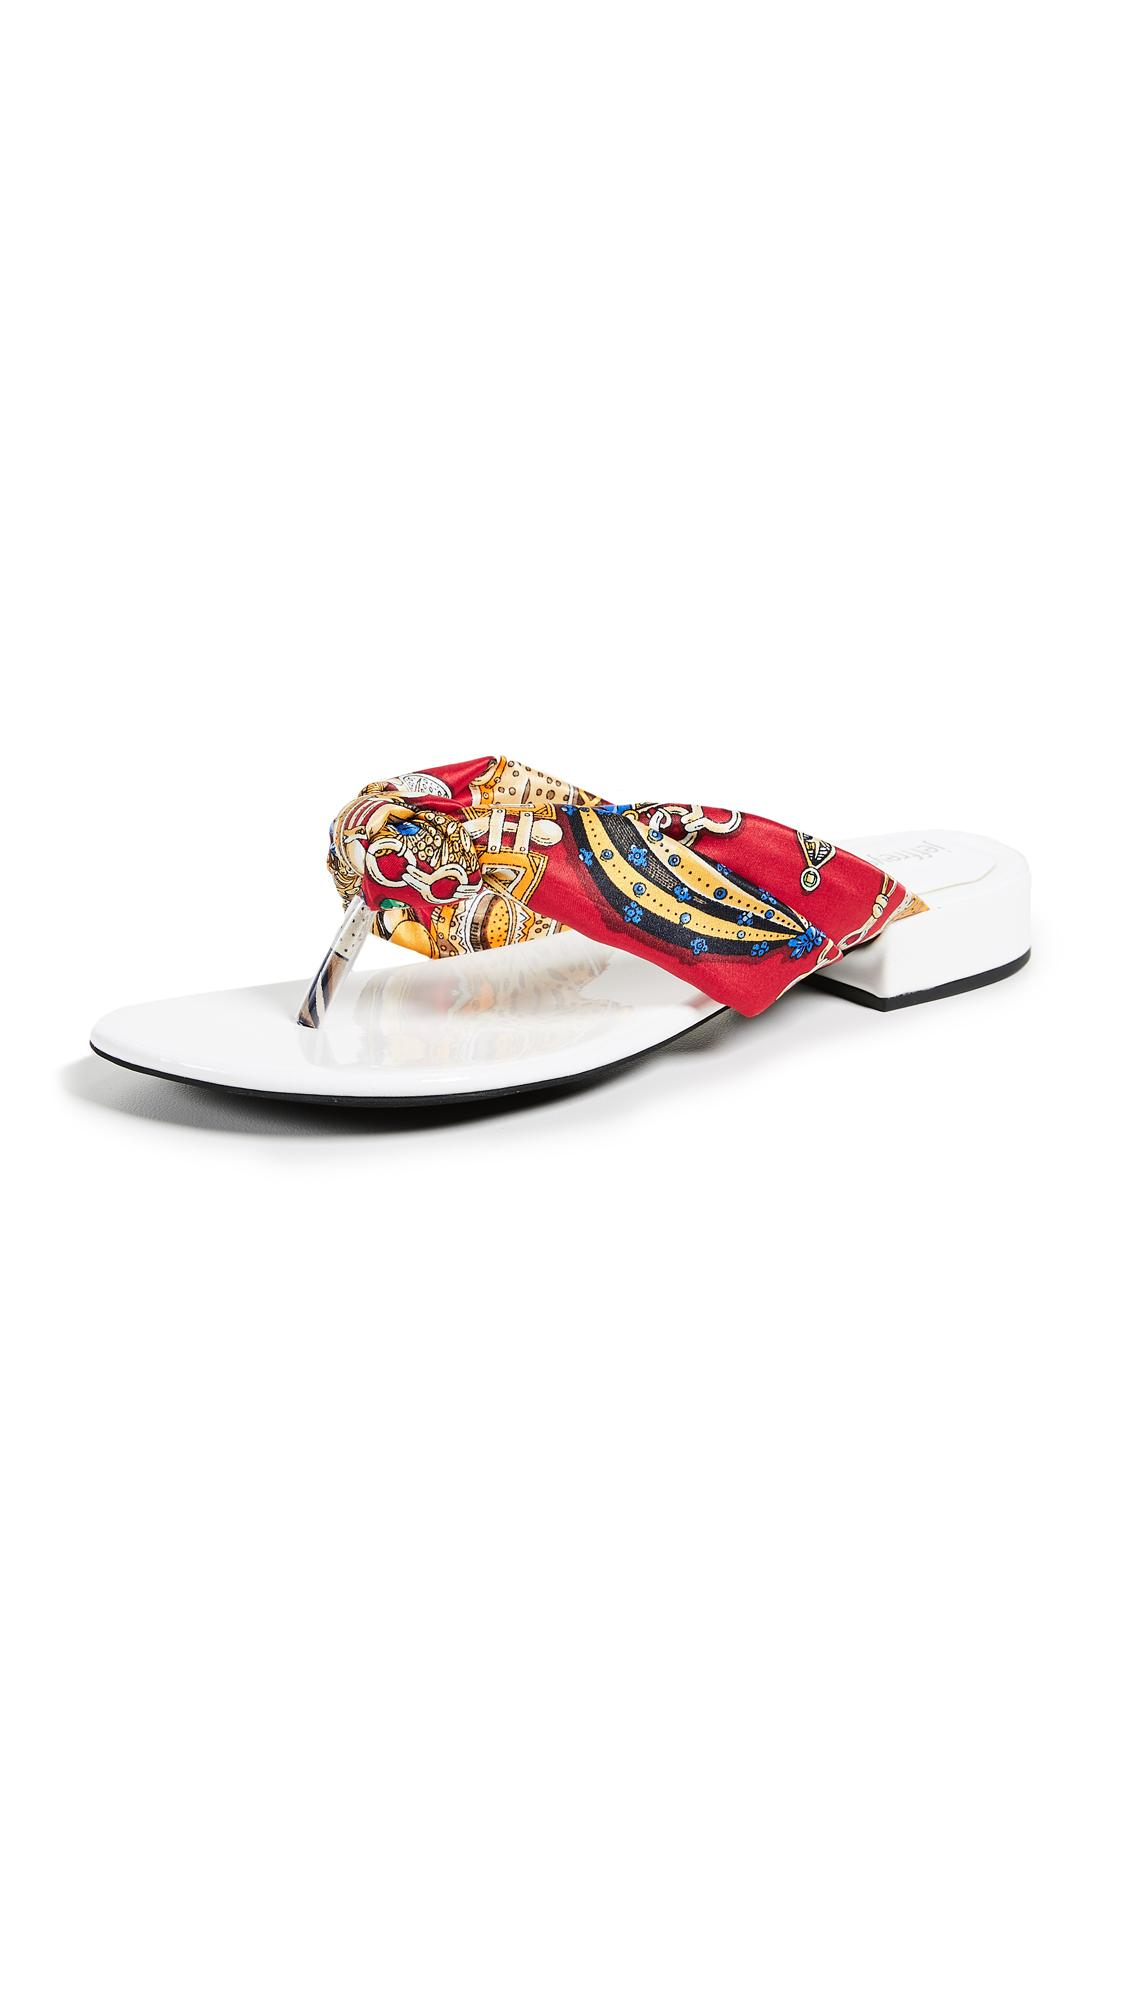 Jeffrey Campbell Tampa Chic Flop Flops In White/red